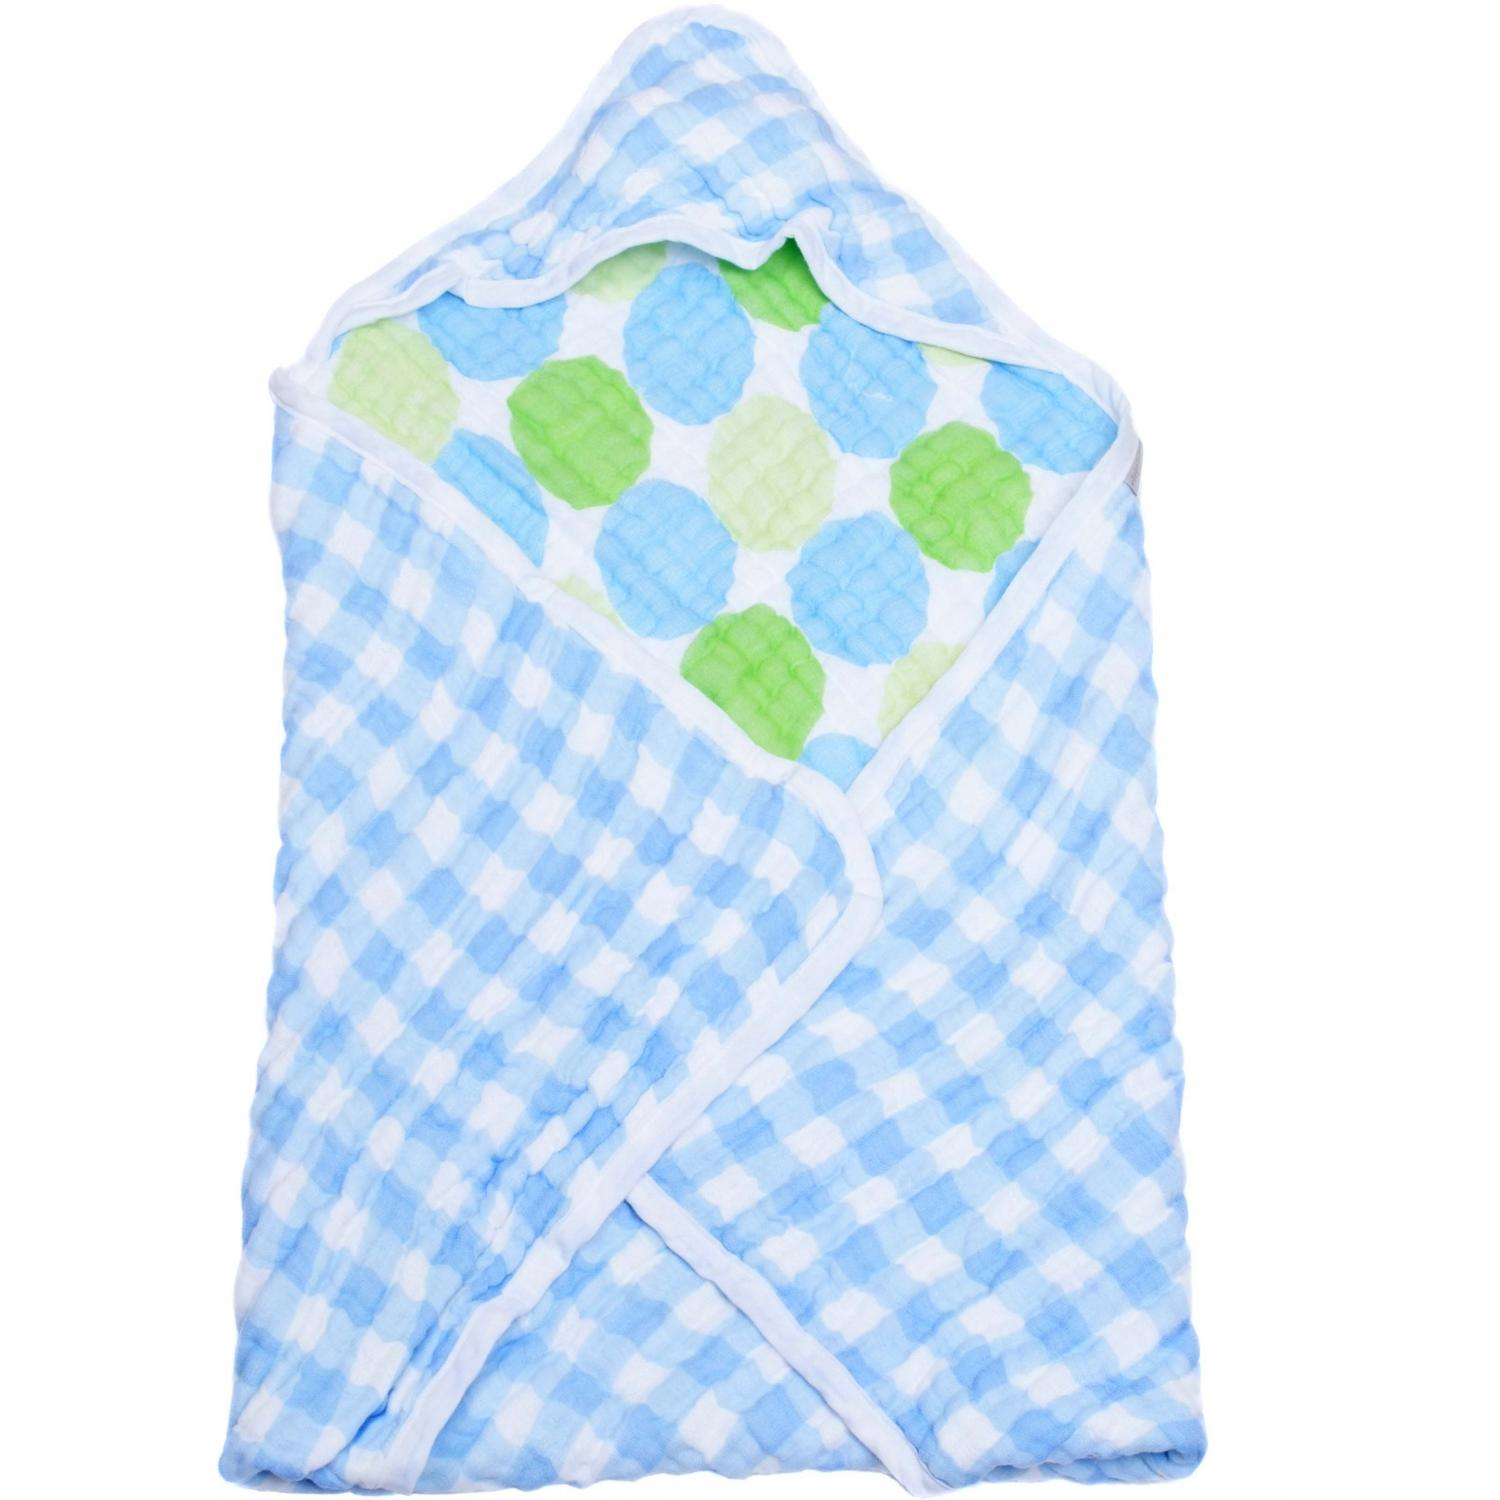 Elegant Baby Swaddle Collection Hooded Towel - Blue